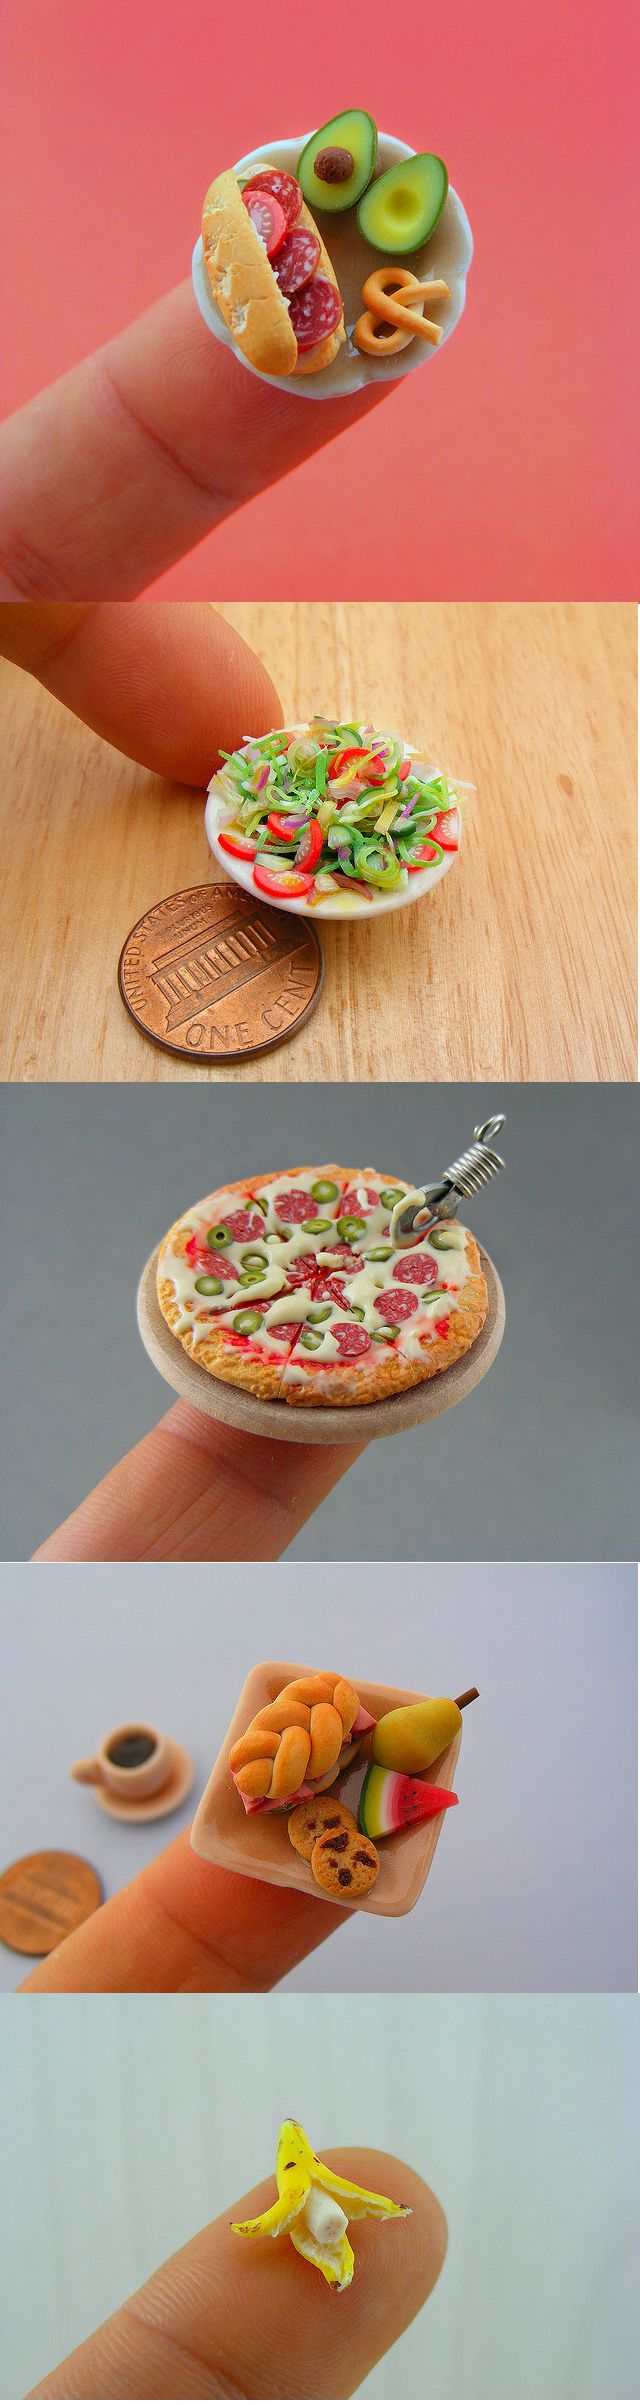 Oh my I've always been mesmerized by minis!!! Love these!   Extraordinary miniature food sculptures by Shay Aaron